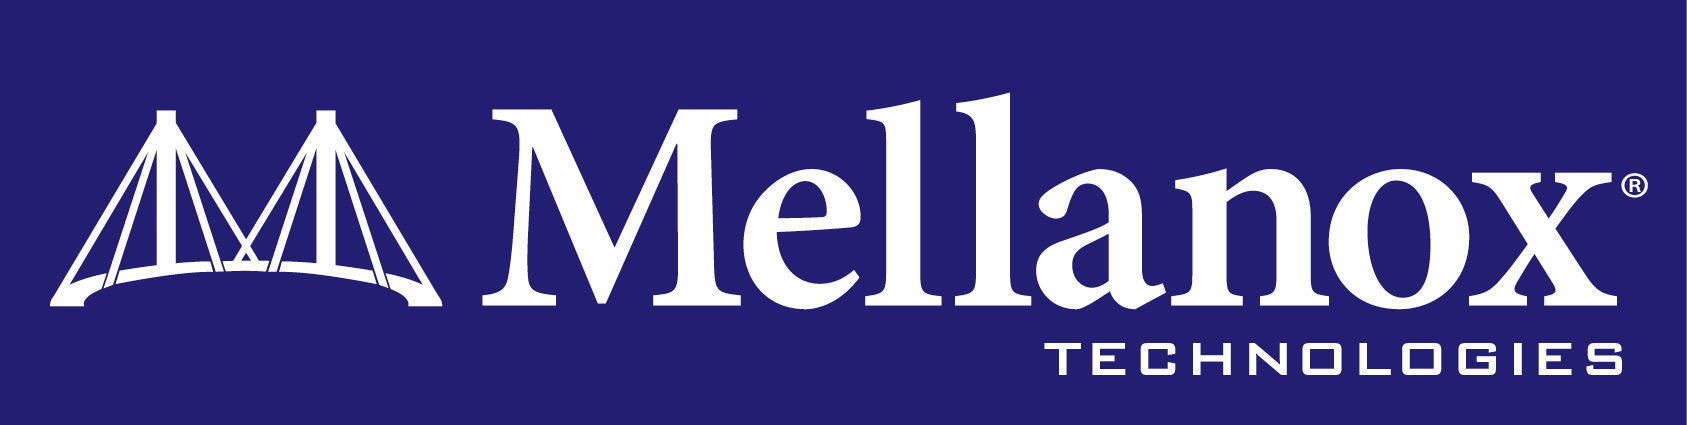 mellanox logo square blue background horizontal